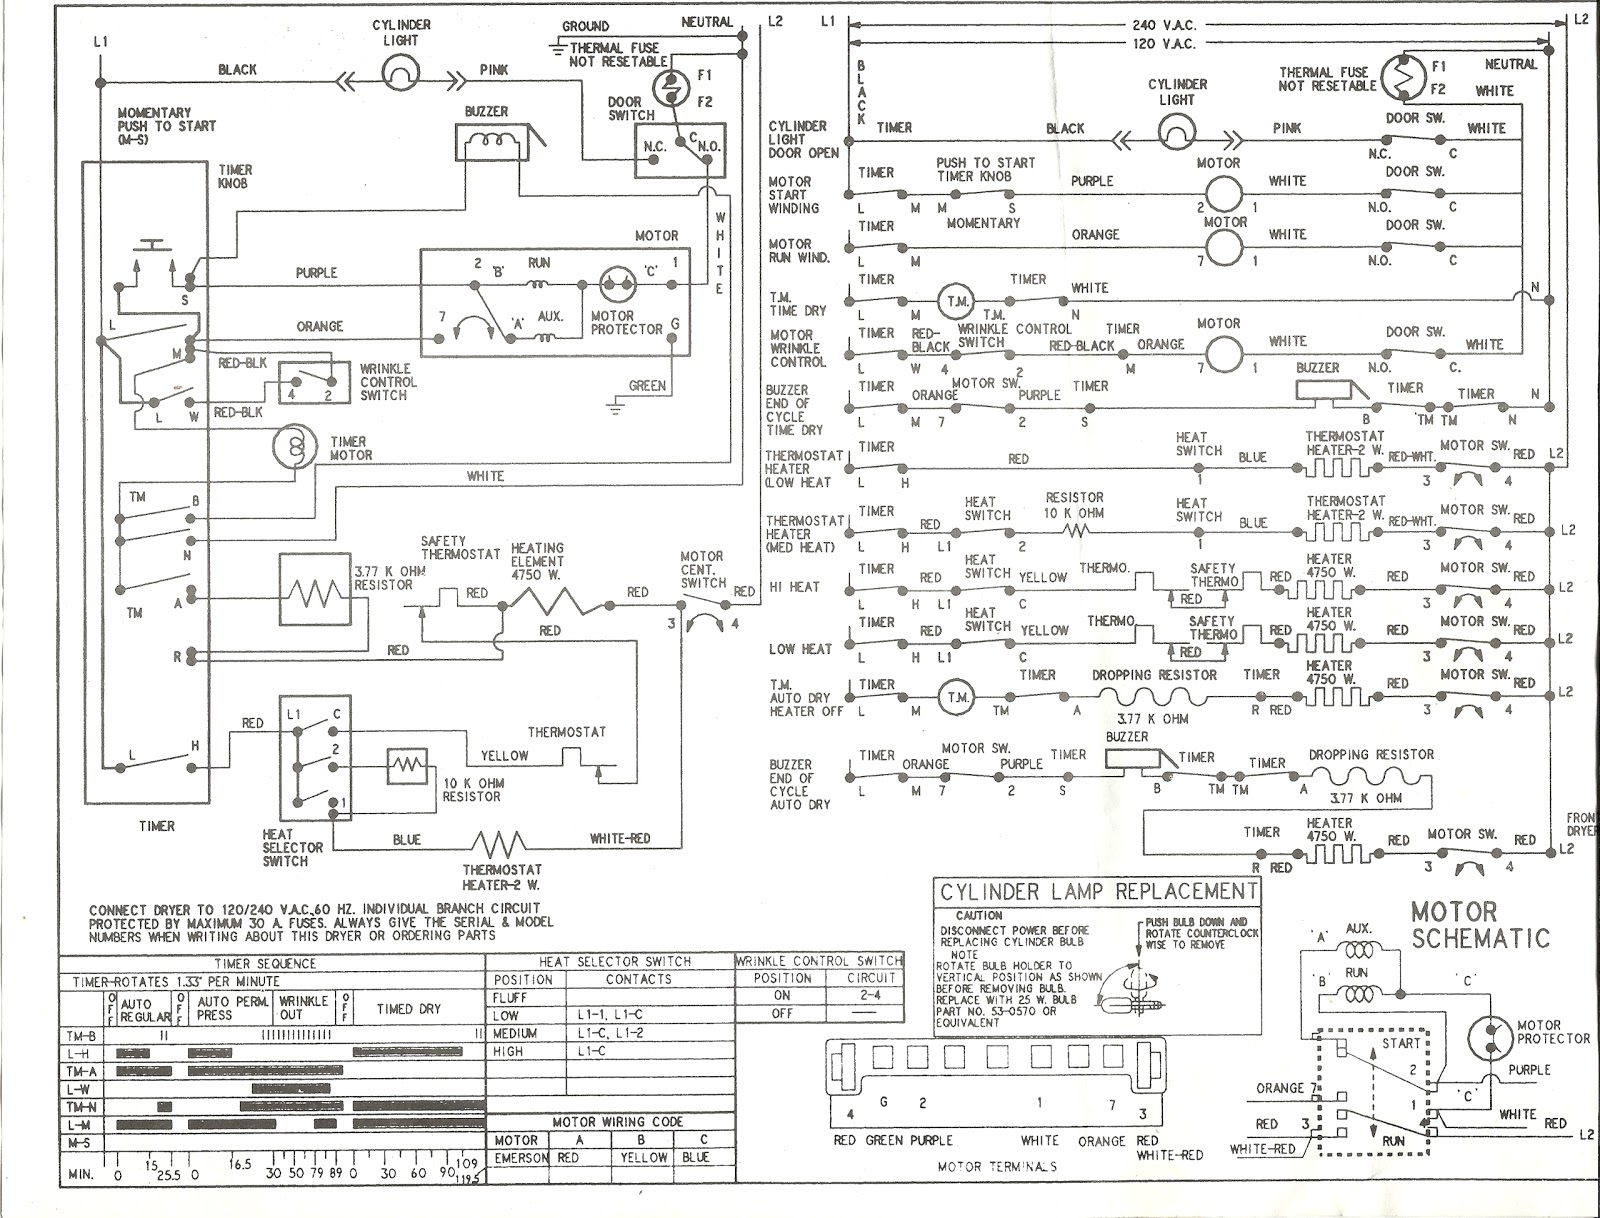 kenmore washer wiring diagram on wiring diagram parts wiring for kenmore 80 series washer parts diagram wiring diagram for whirlpool washer on wiring download wirning  at love-stories.co